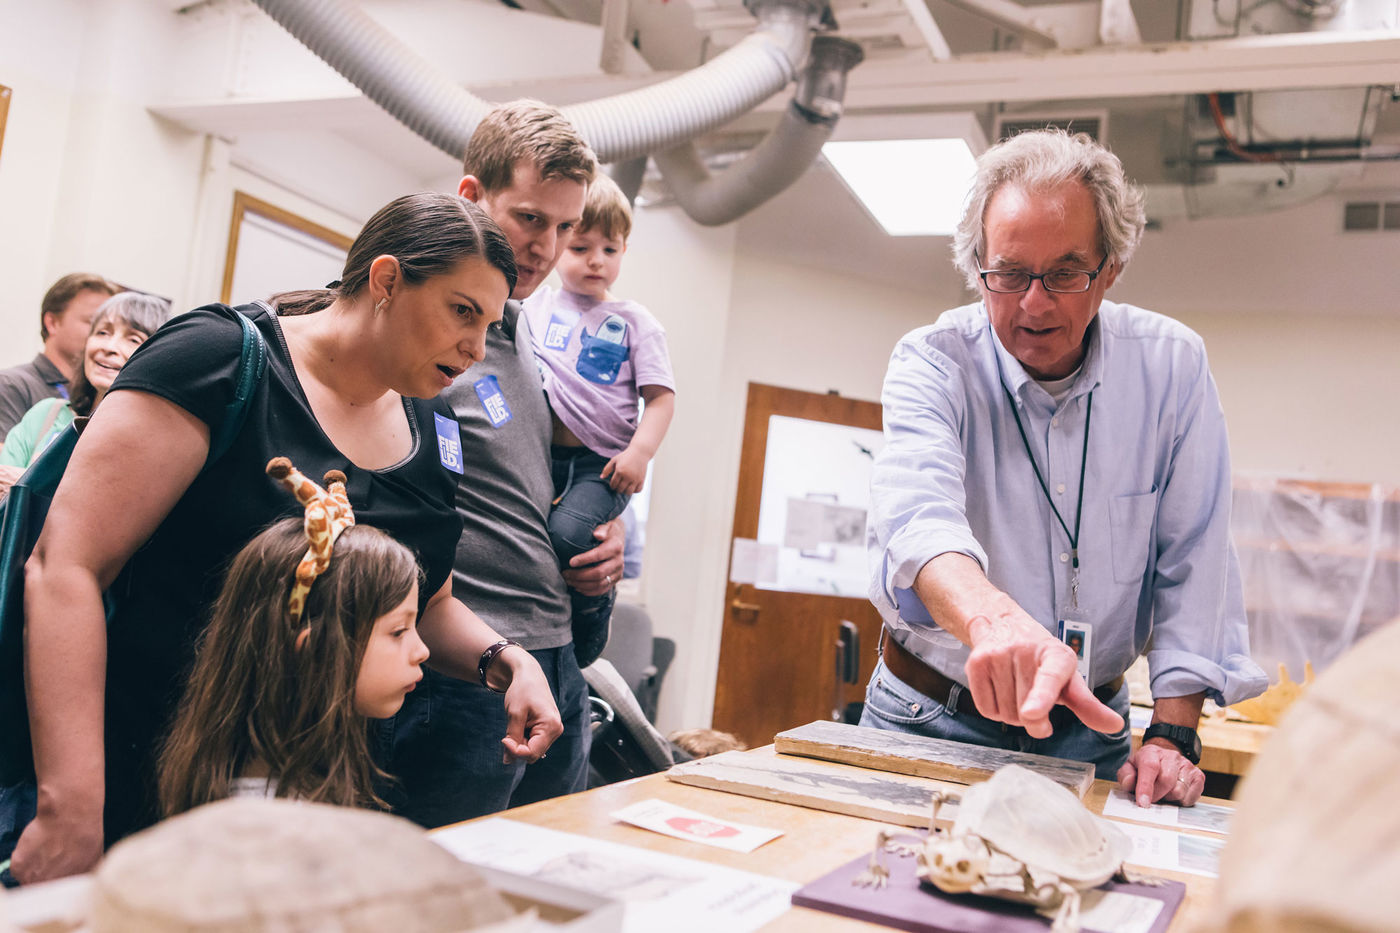 Two adults and two children listen to a staff member, who points to a specimen on display at Members' Nights.